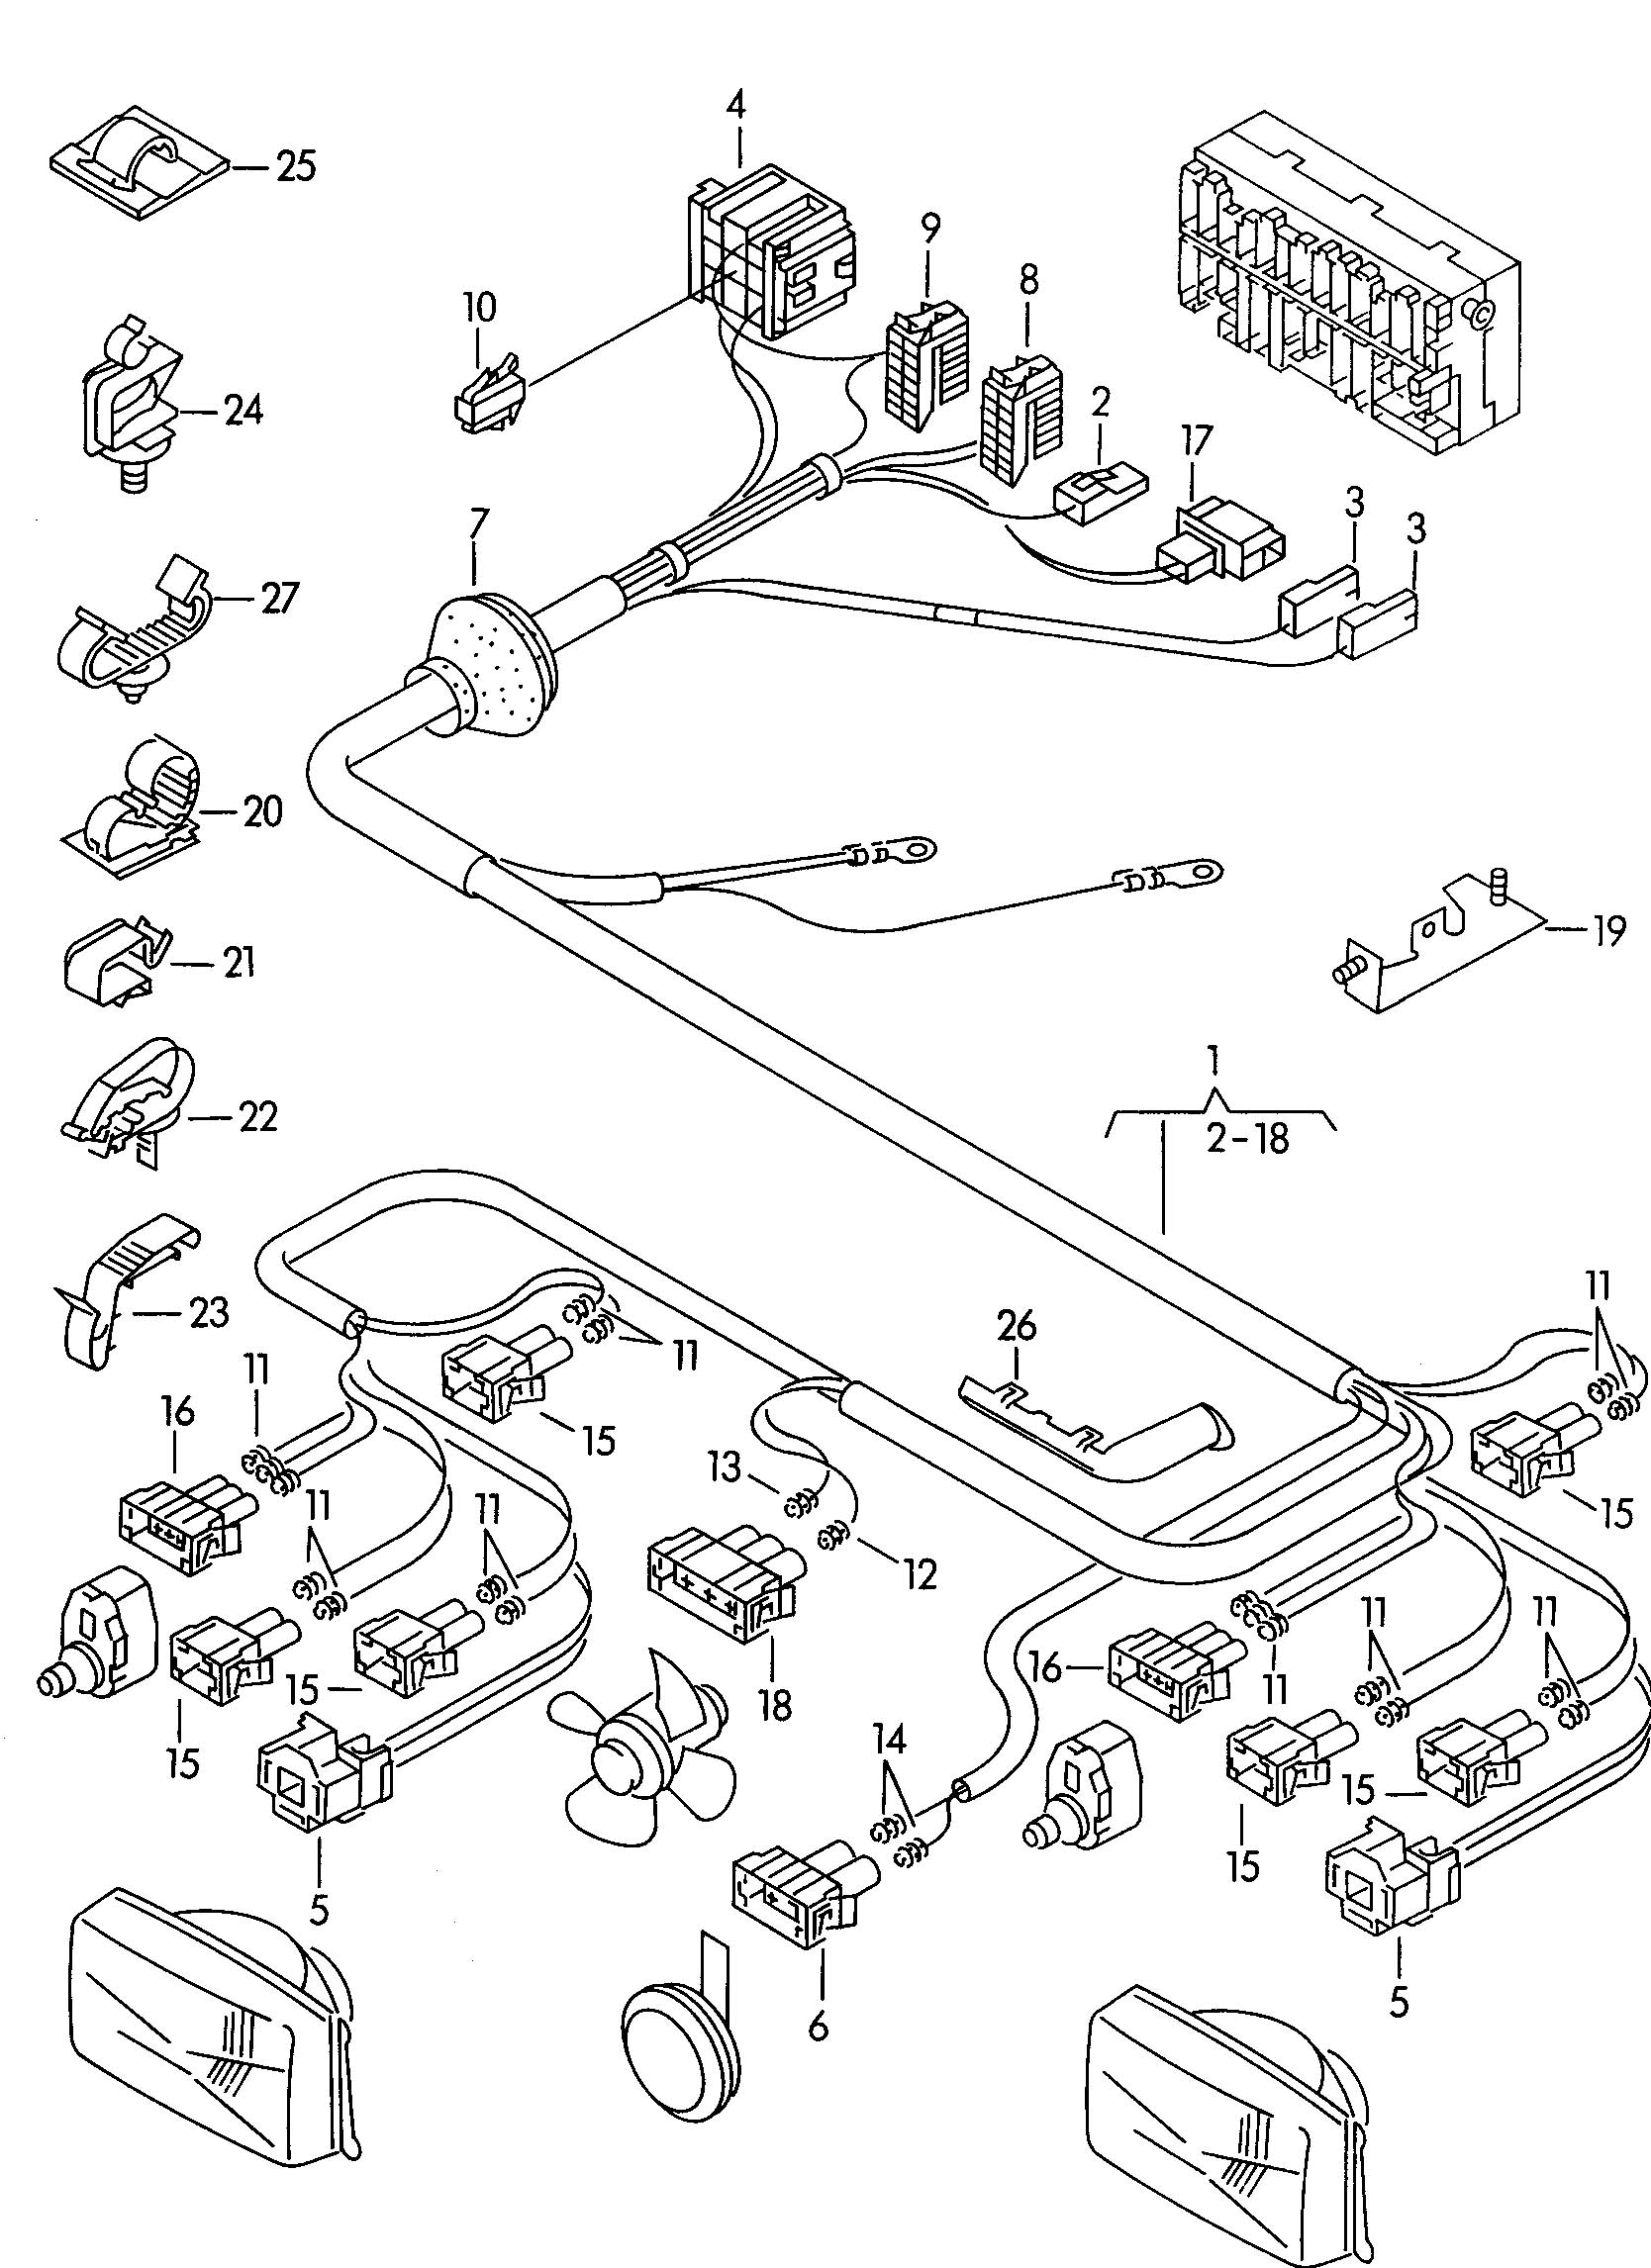 1999 Chrysler Lhs Fuse Panel Diagram Not Lossing Wiring 1998 Concorde Box 98 Beetle Auto 300m 1996